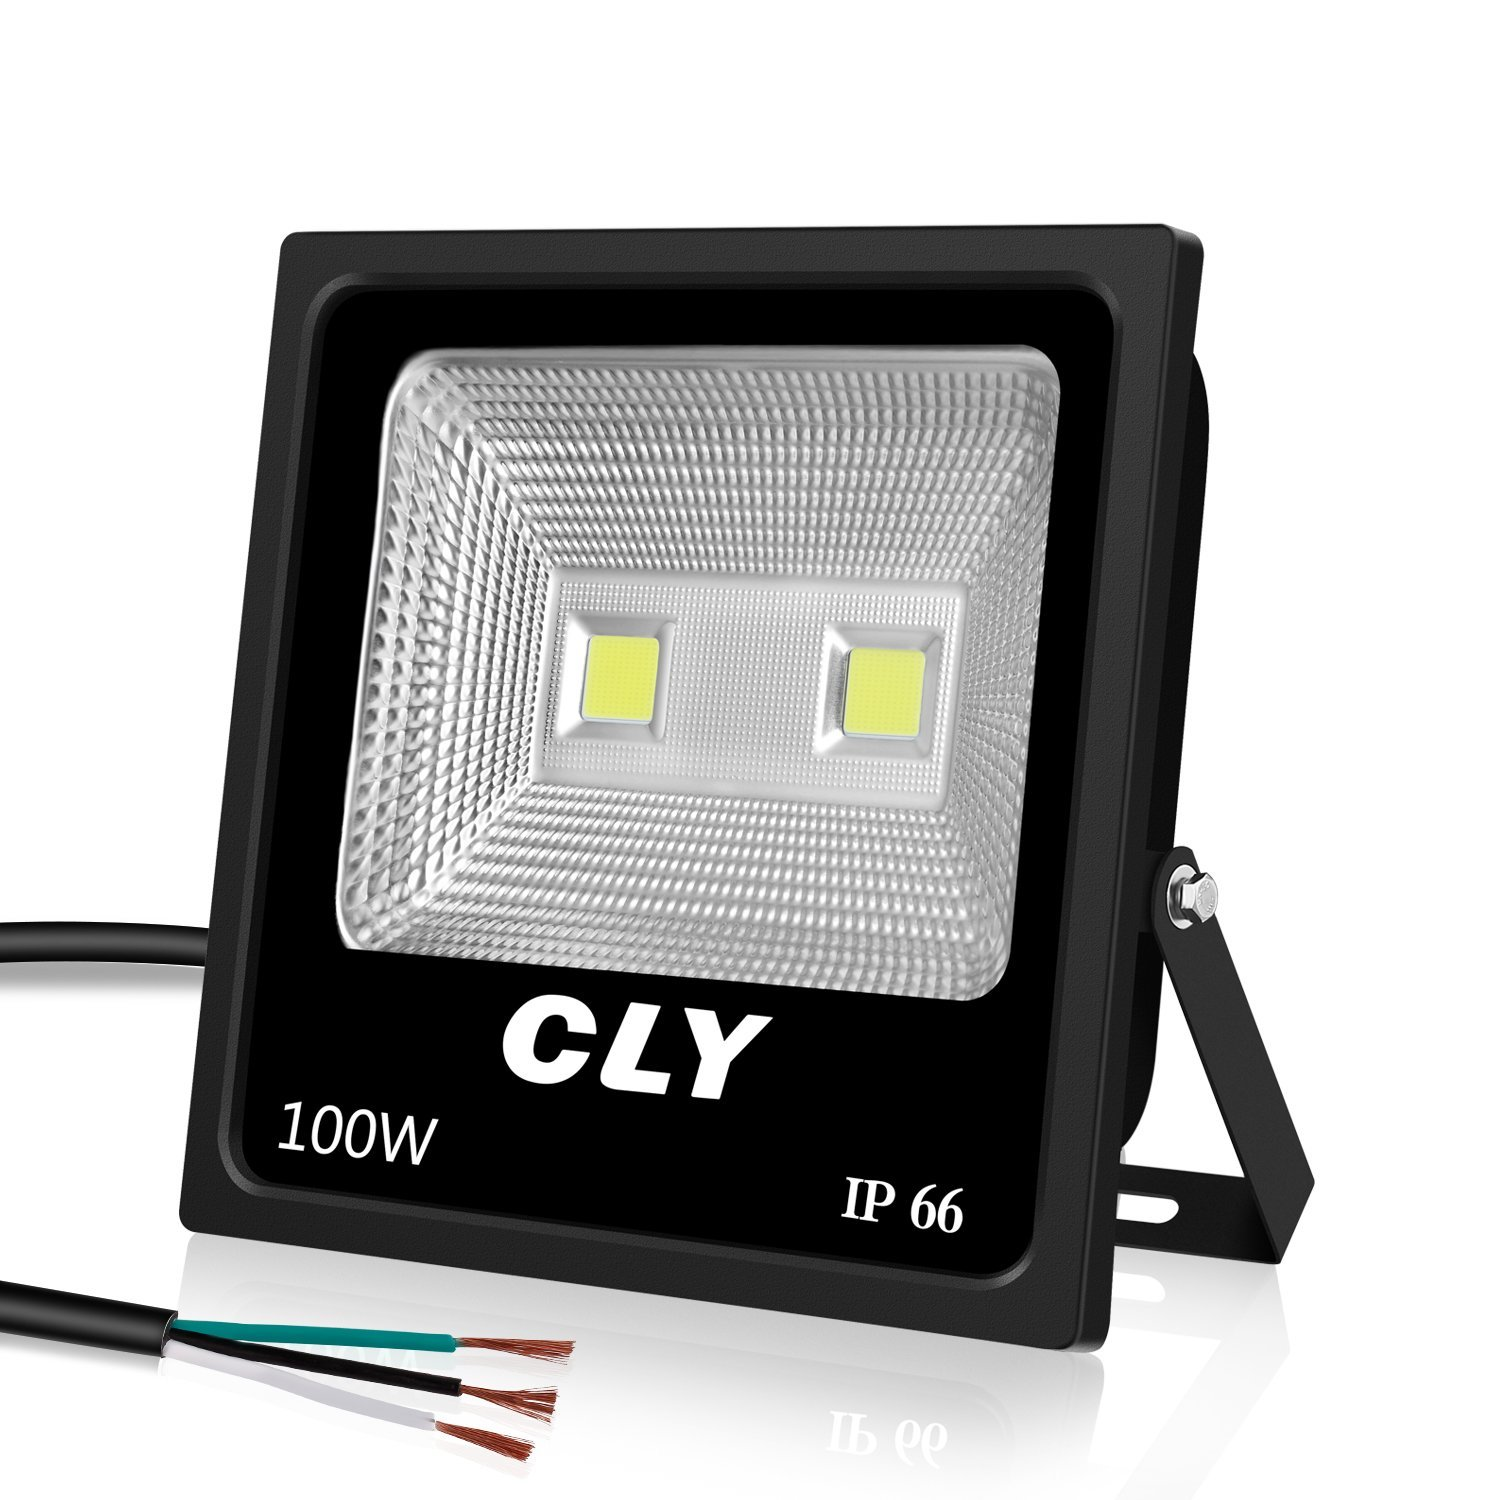 100W LED Flood Light Super Bright Outdoor Security Light, IP66 Waterproof, 10500LM, 6000K Daylight White for Garage, Garden, Lawn and Yard